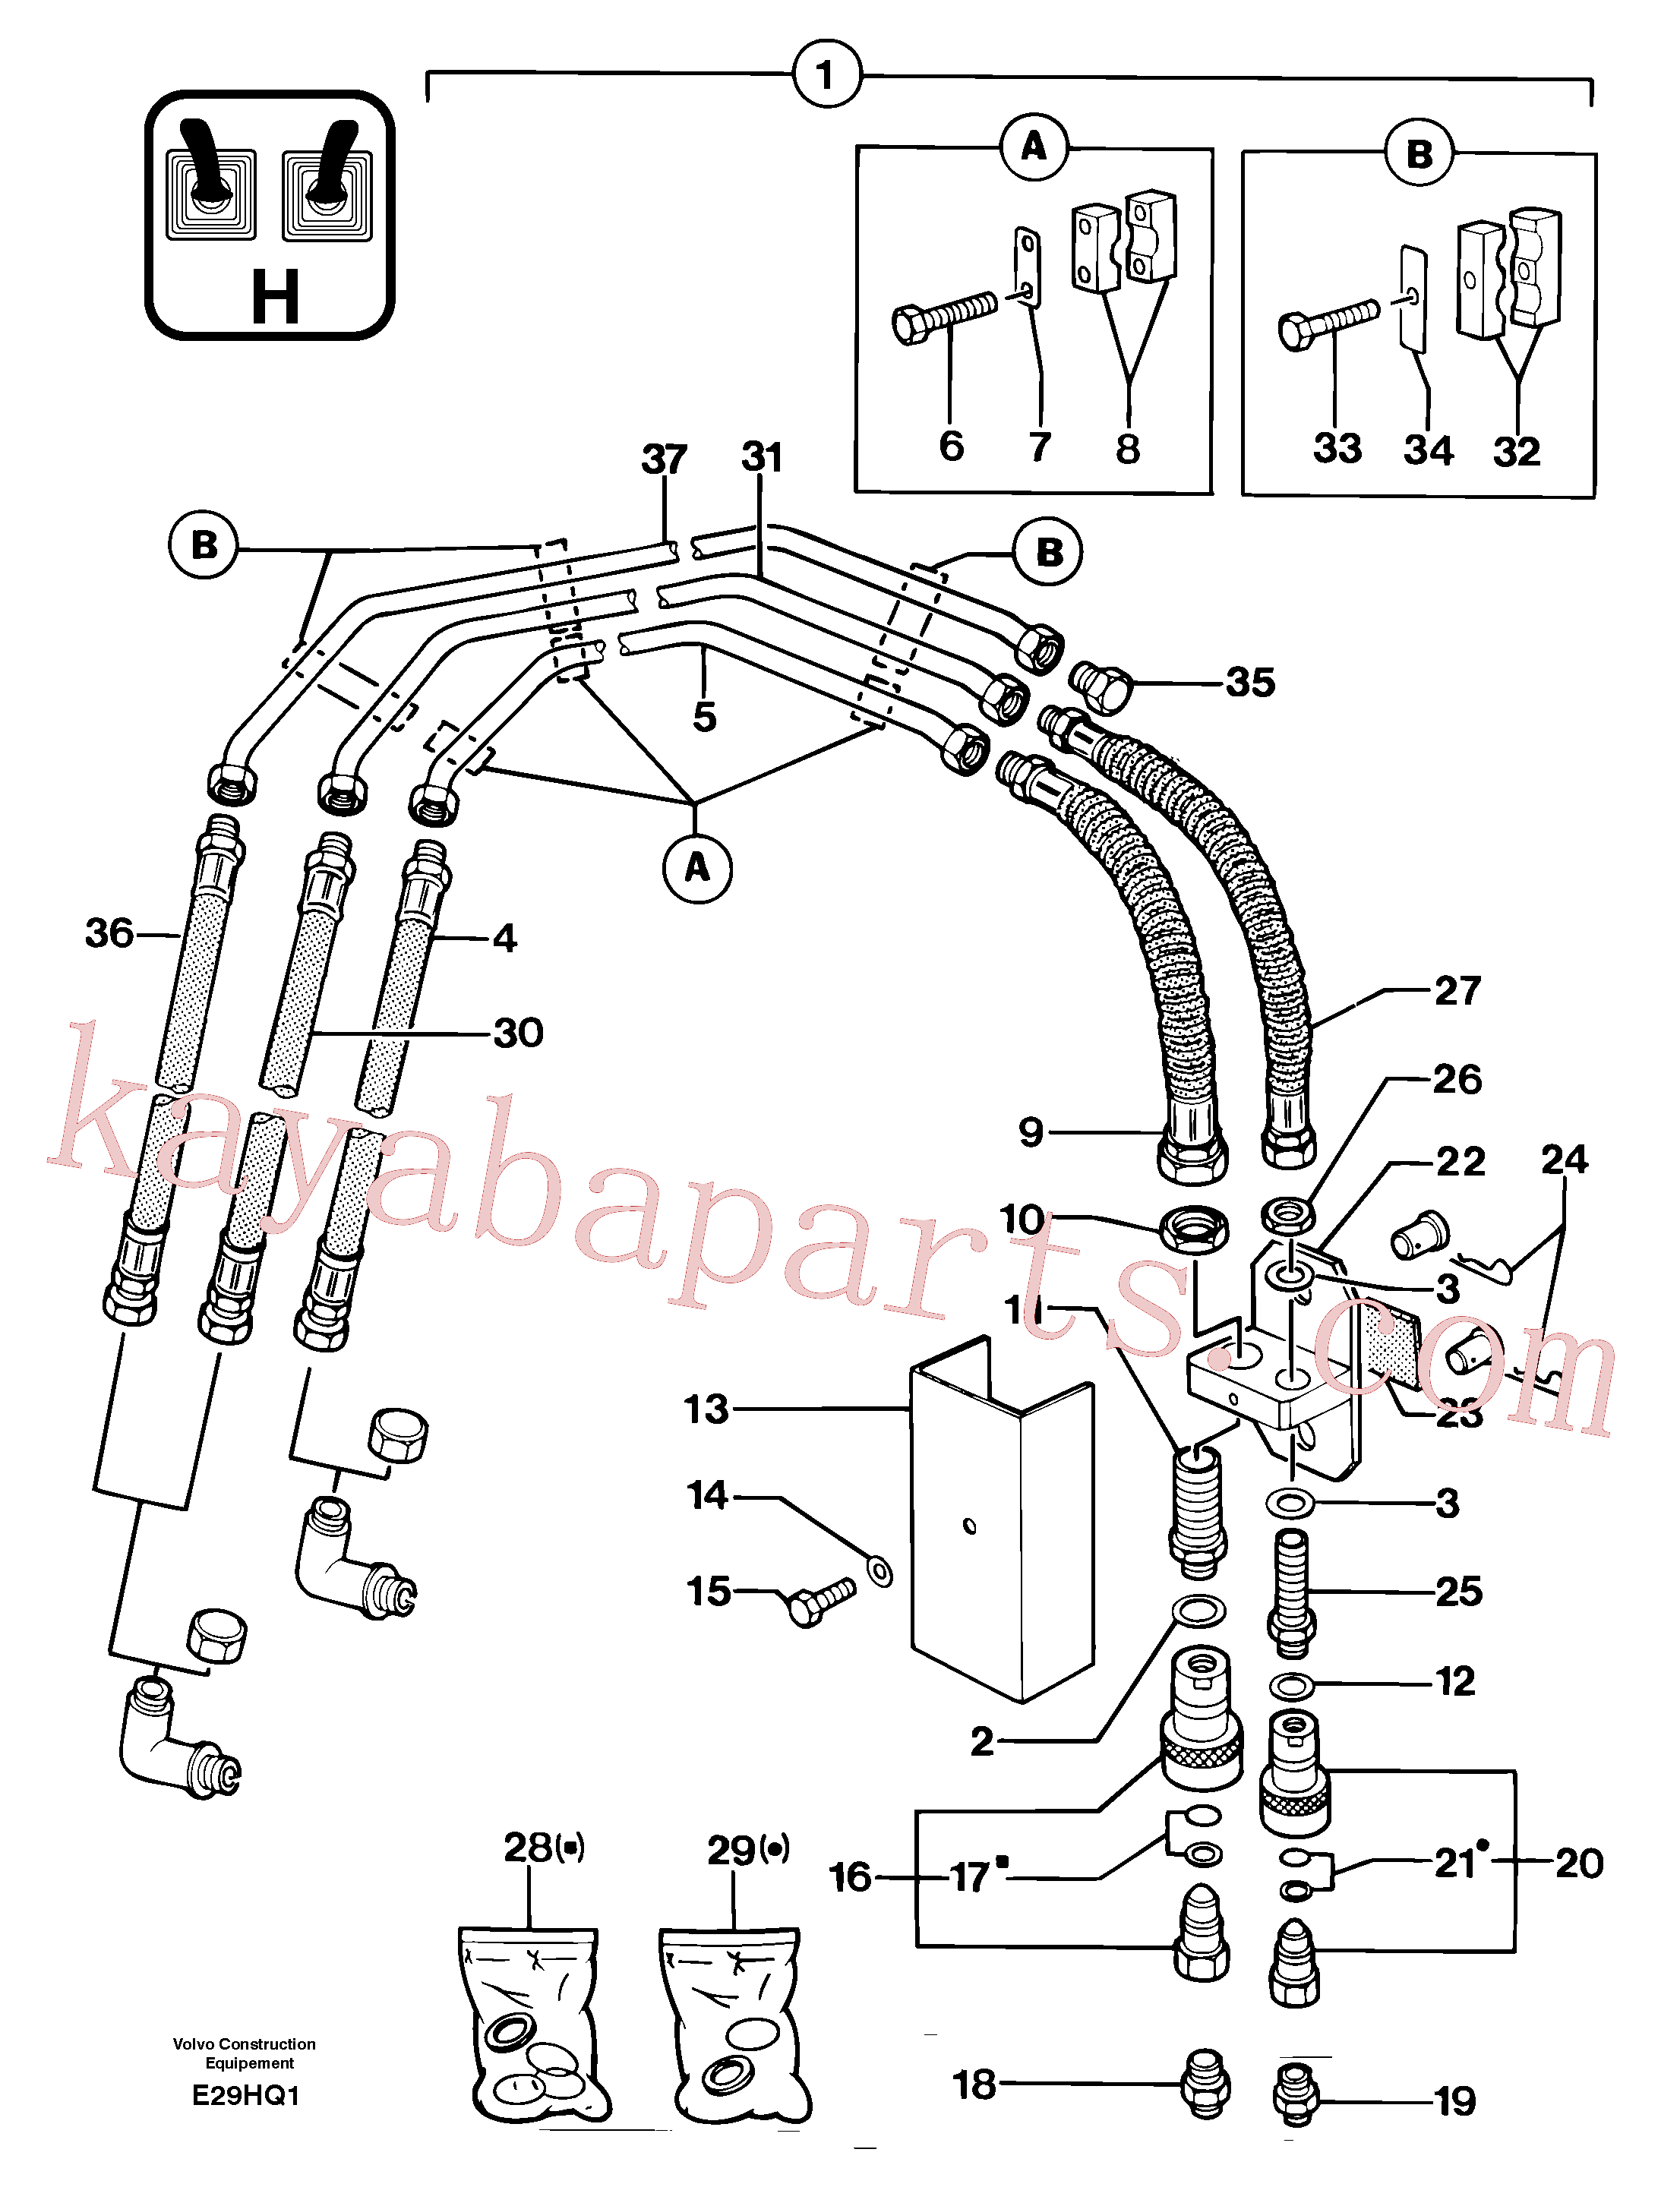 PJ4690123 for Volvo Hydraulic circuit ( accessories )(E29HQ1 assembly)